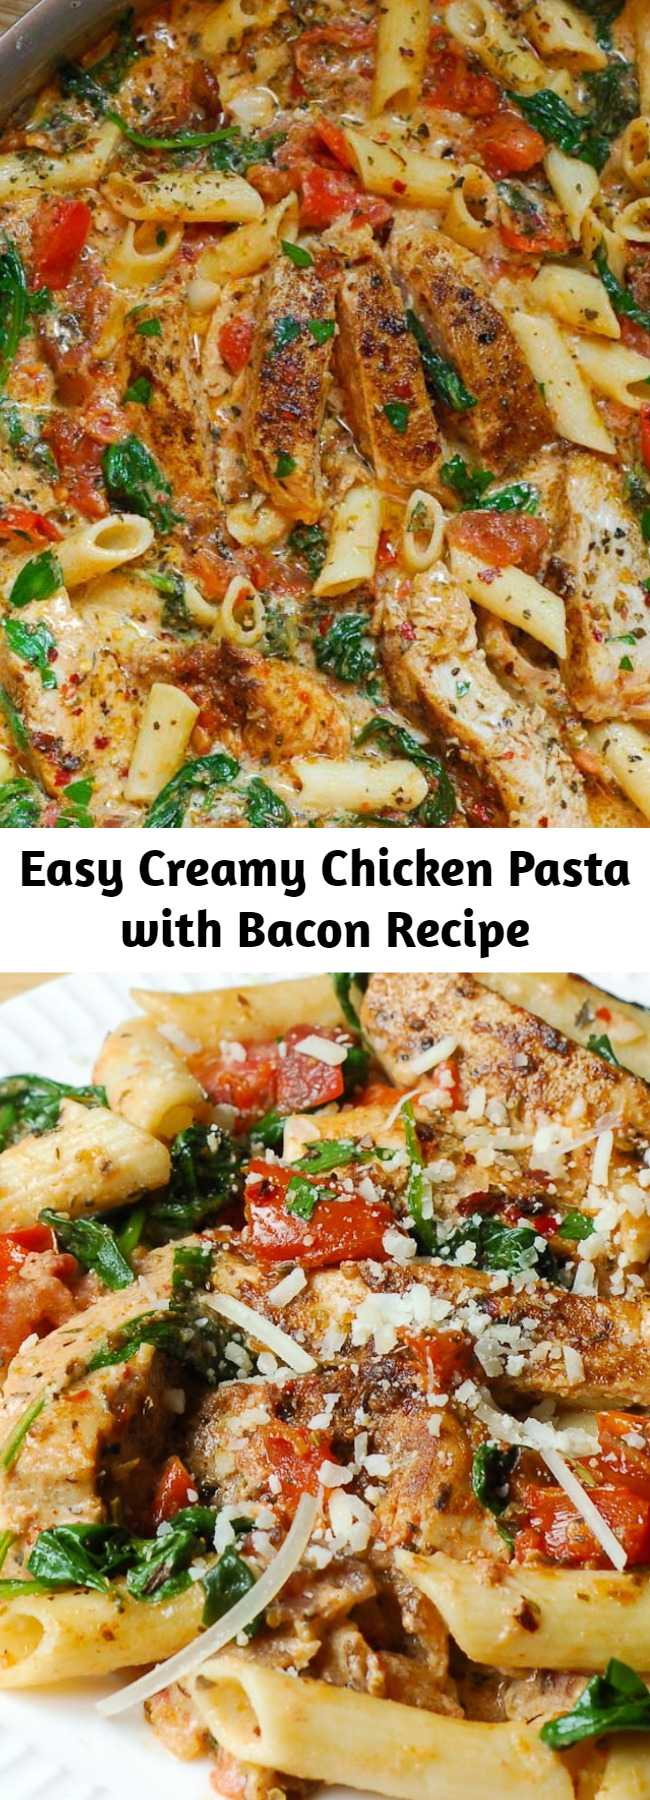 Easy Creamy Chicken Pasta with Bacon Recipe - Creamy chicken pasta with bacon is easy to make weeknight one pot pasta dish! With only 30 minutes of total work, this chicken dinner recipe is simple, fast and delicious! Full of tender chicken, spinach, tomatoes, and bacon! #chickenpasta #bacon #easydinner #30minutemeal